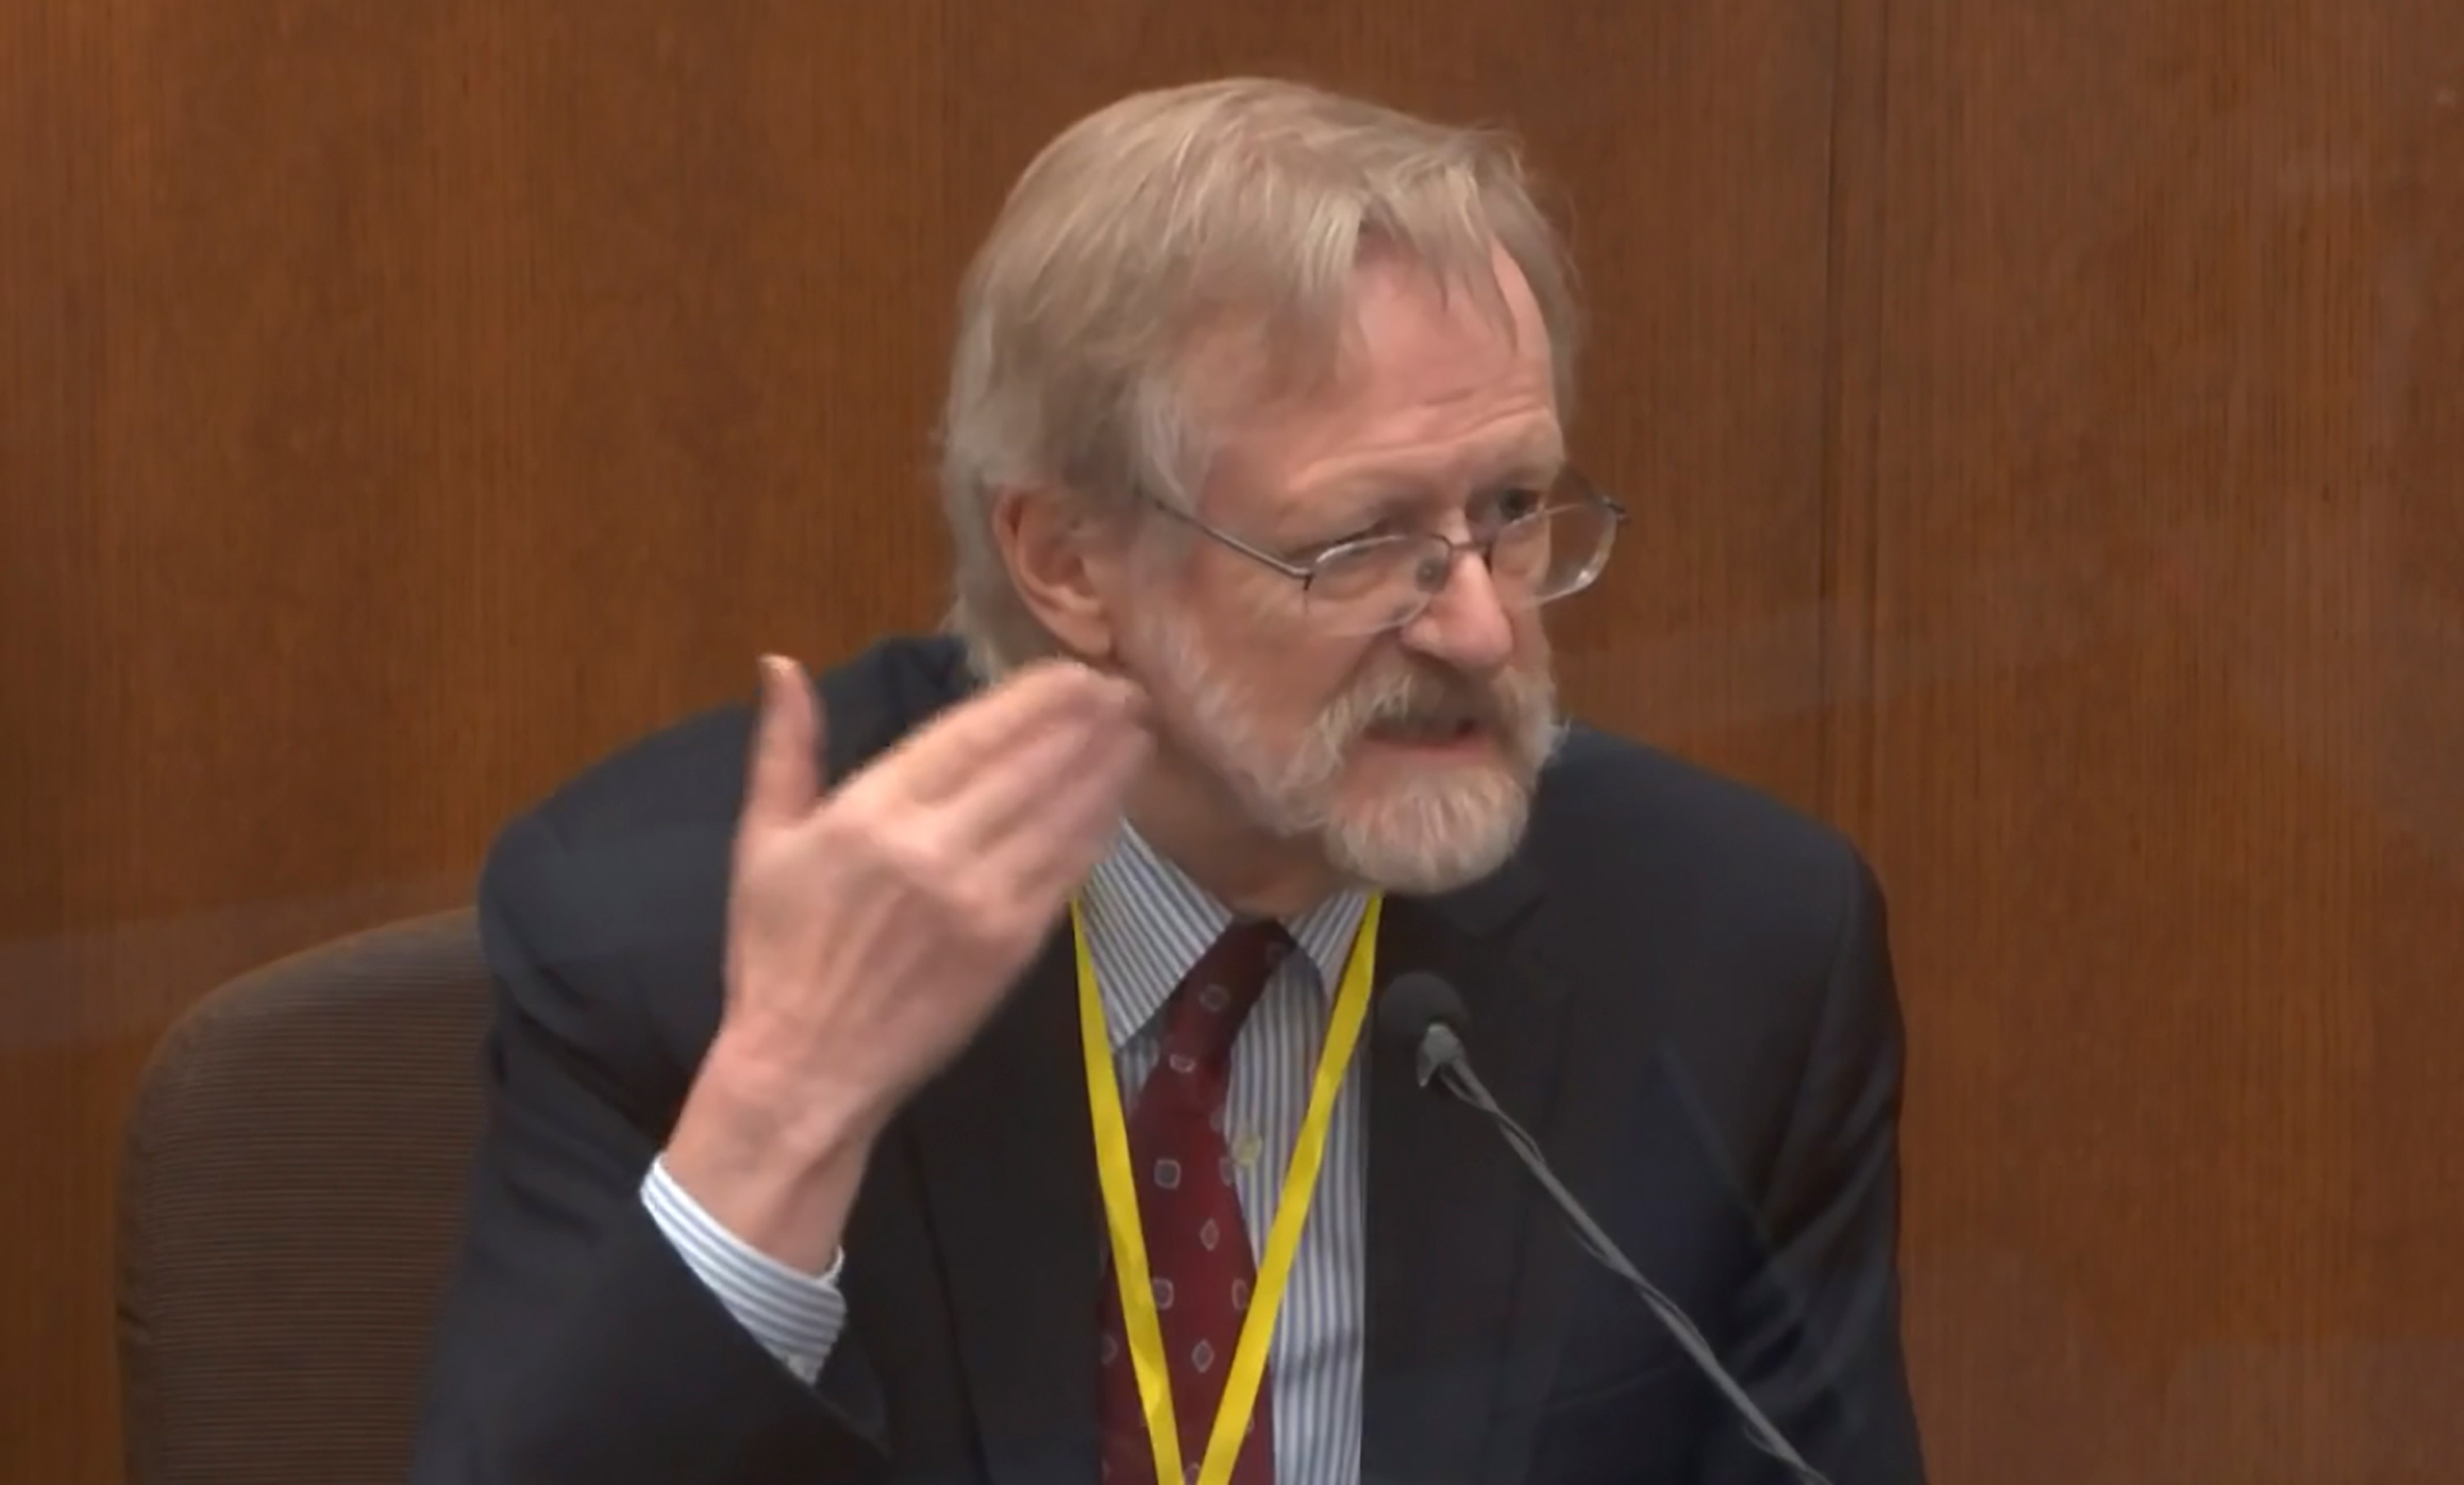 Dr. Martin Tobin testifies on April 8 at Hennepin County Courthouse in the trial of former Minneapolis police Officer Derek Chauvin.